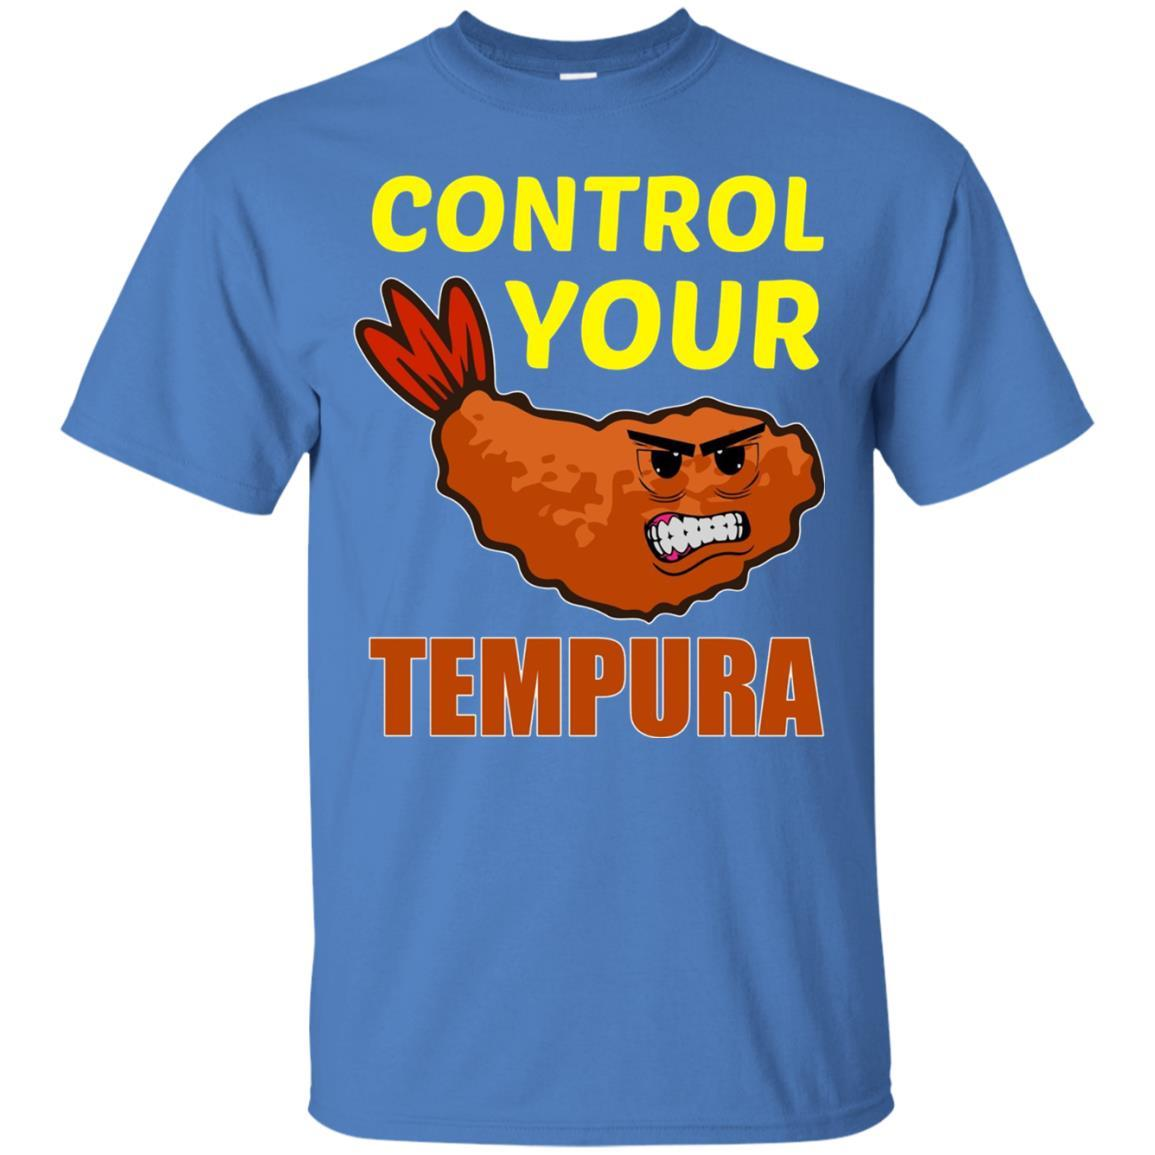 FUNNY CONTROL YOUR TEMPURA T-SHIRT Japanese Sushi Food Gift - T-Shirt